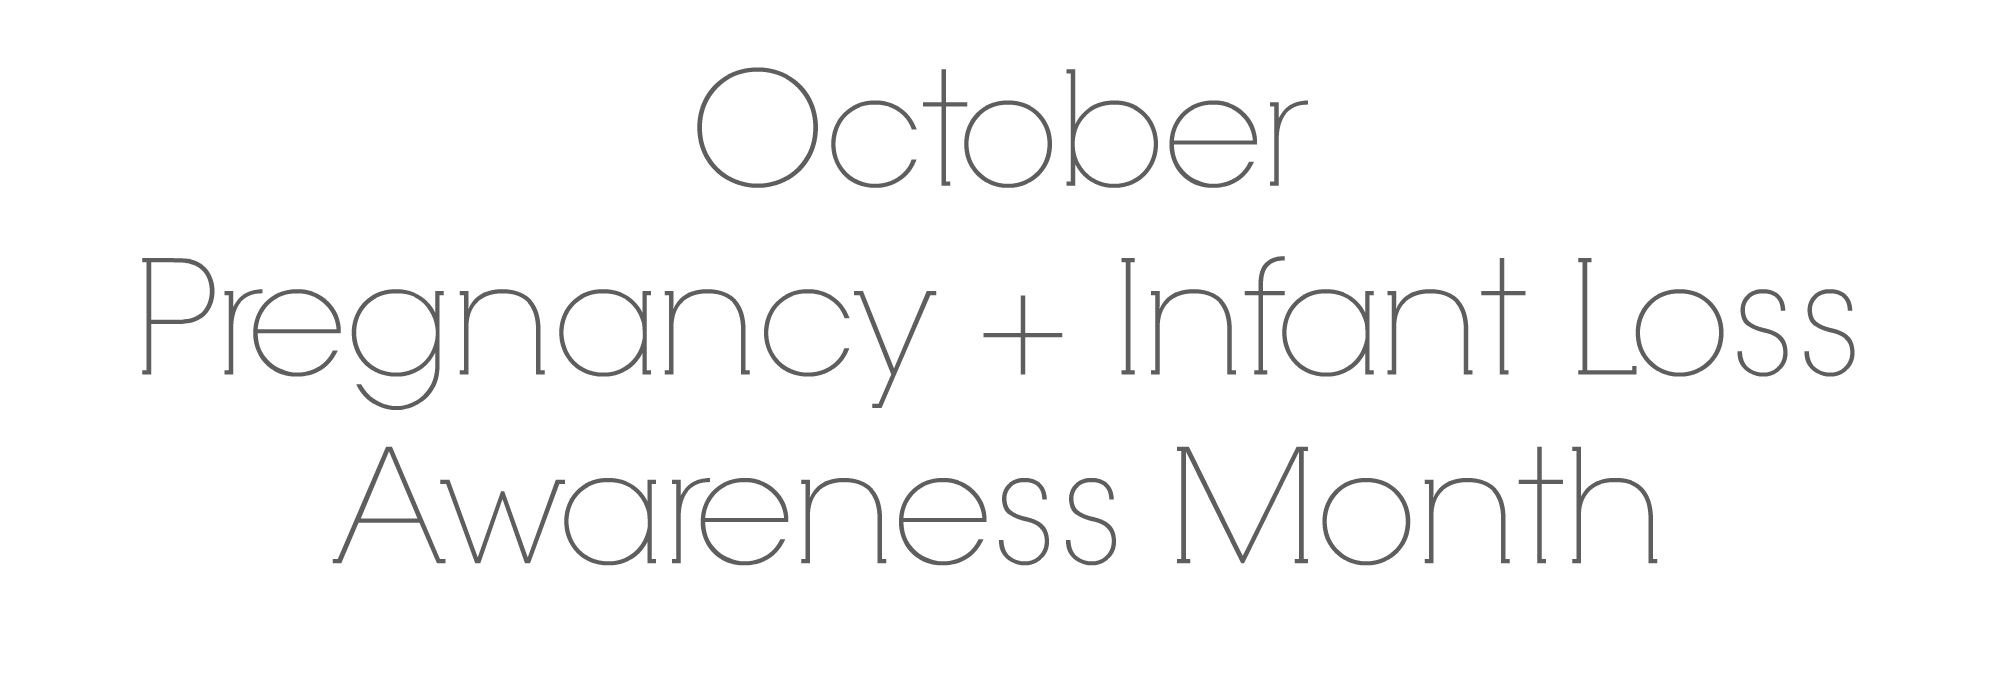 october pregnancy infant loss awareness